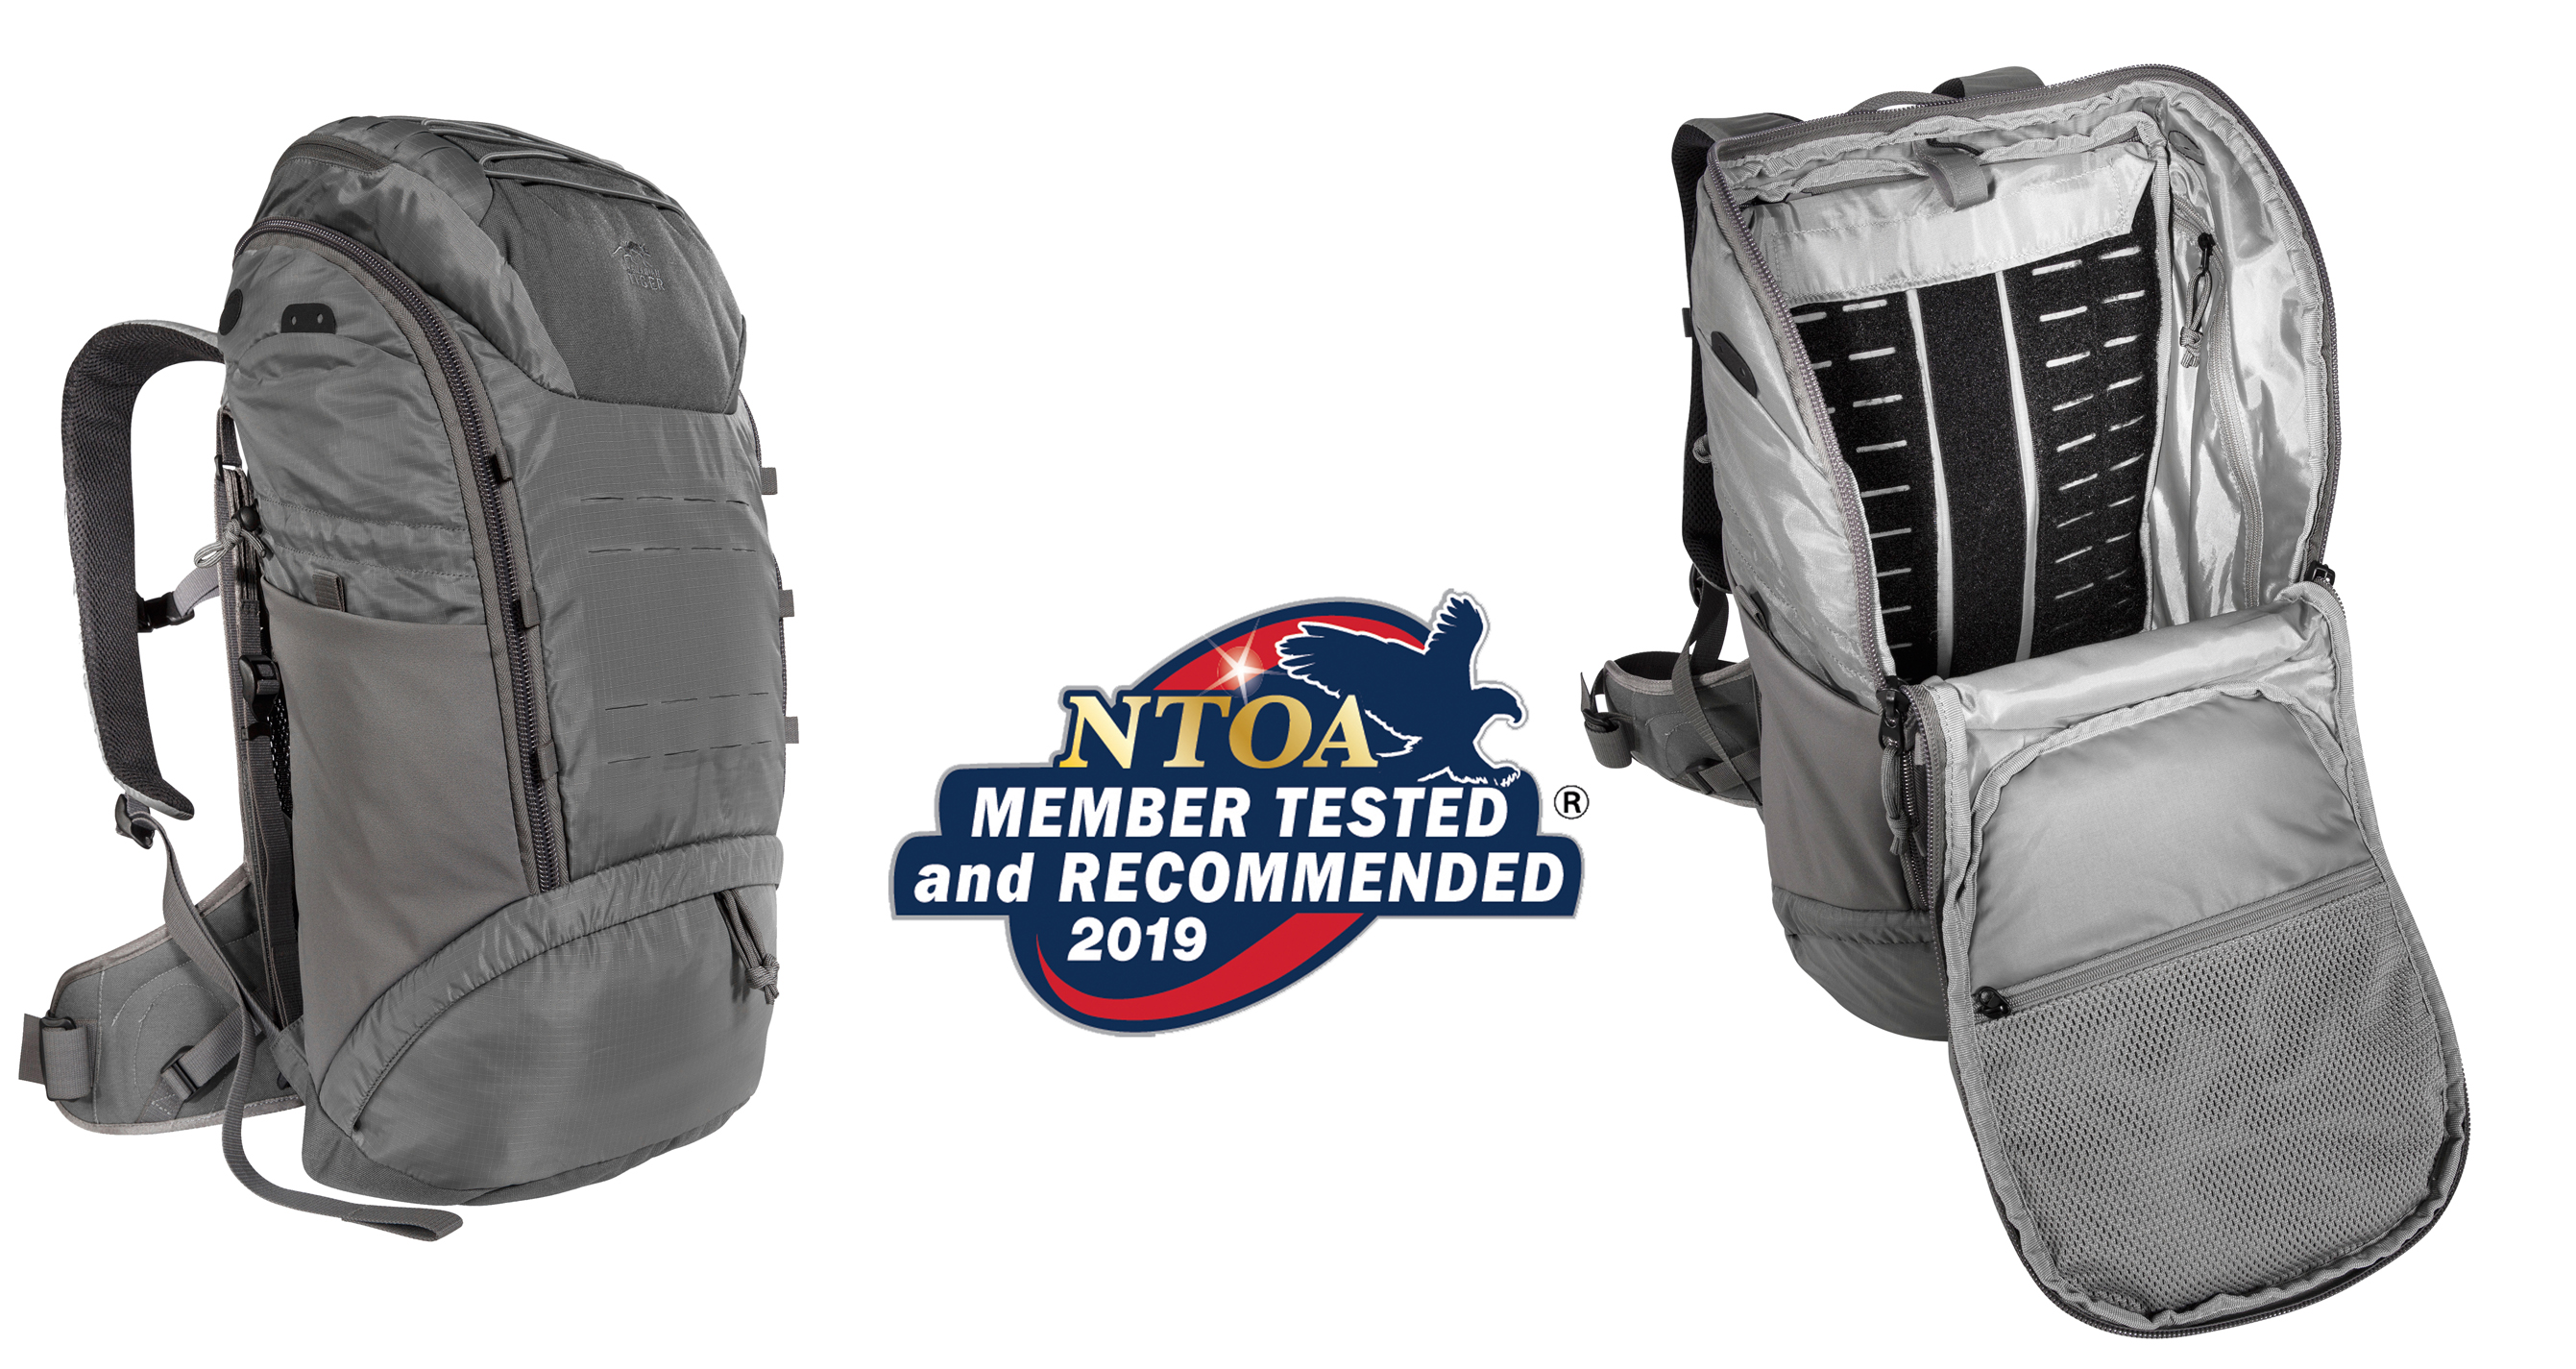 Tasmanian Tiger® TT TAC Modular Pack 30 Vent Receives GOLD Score in the 2019 NTOA Member Tested and Recommended Program with Overall Score of 4.78 out of 5